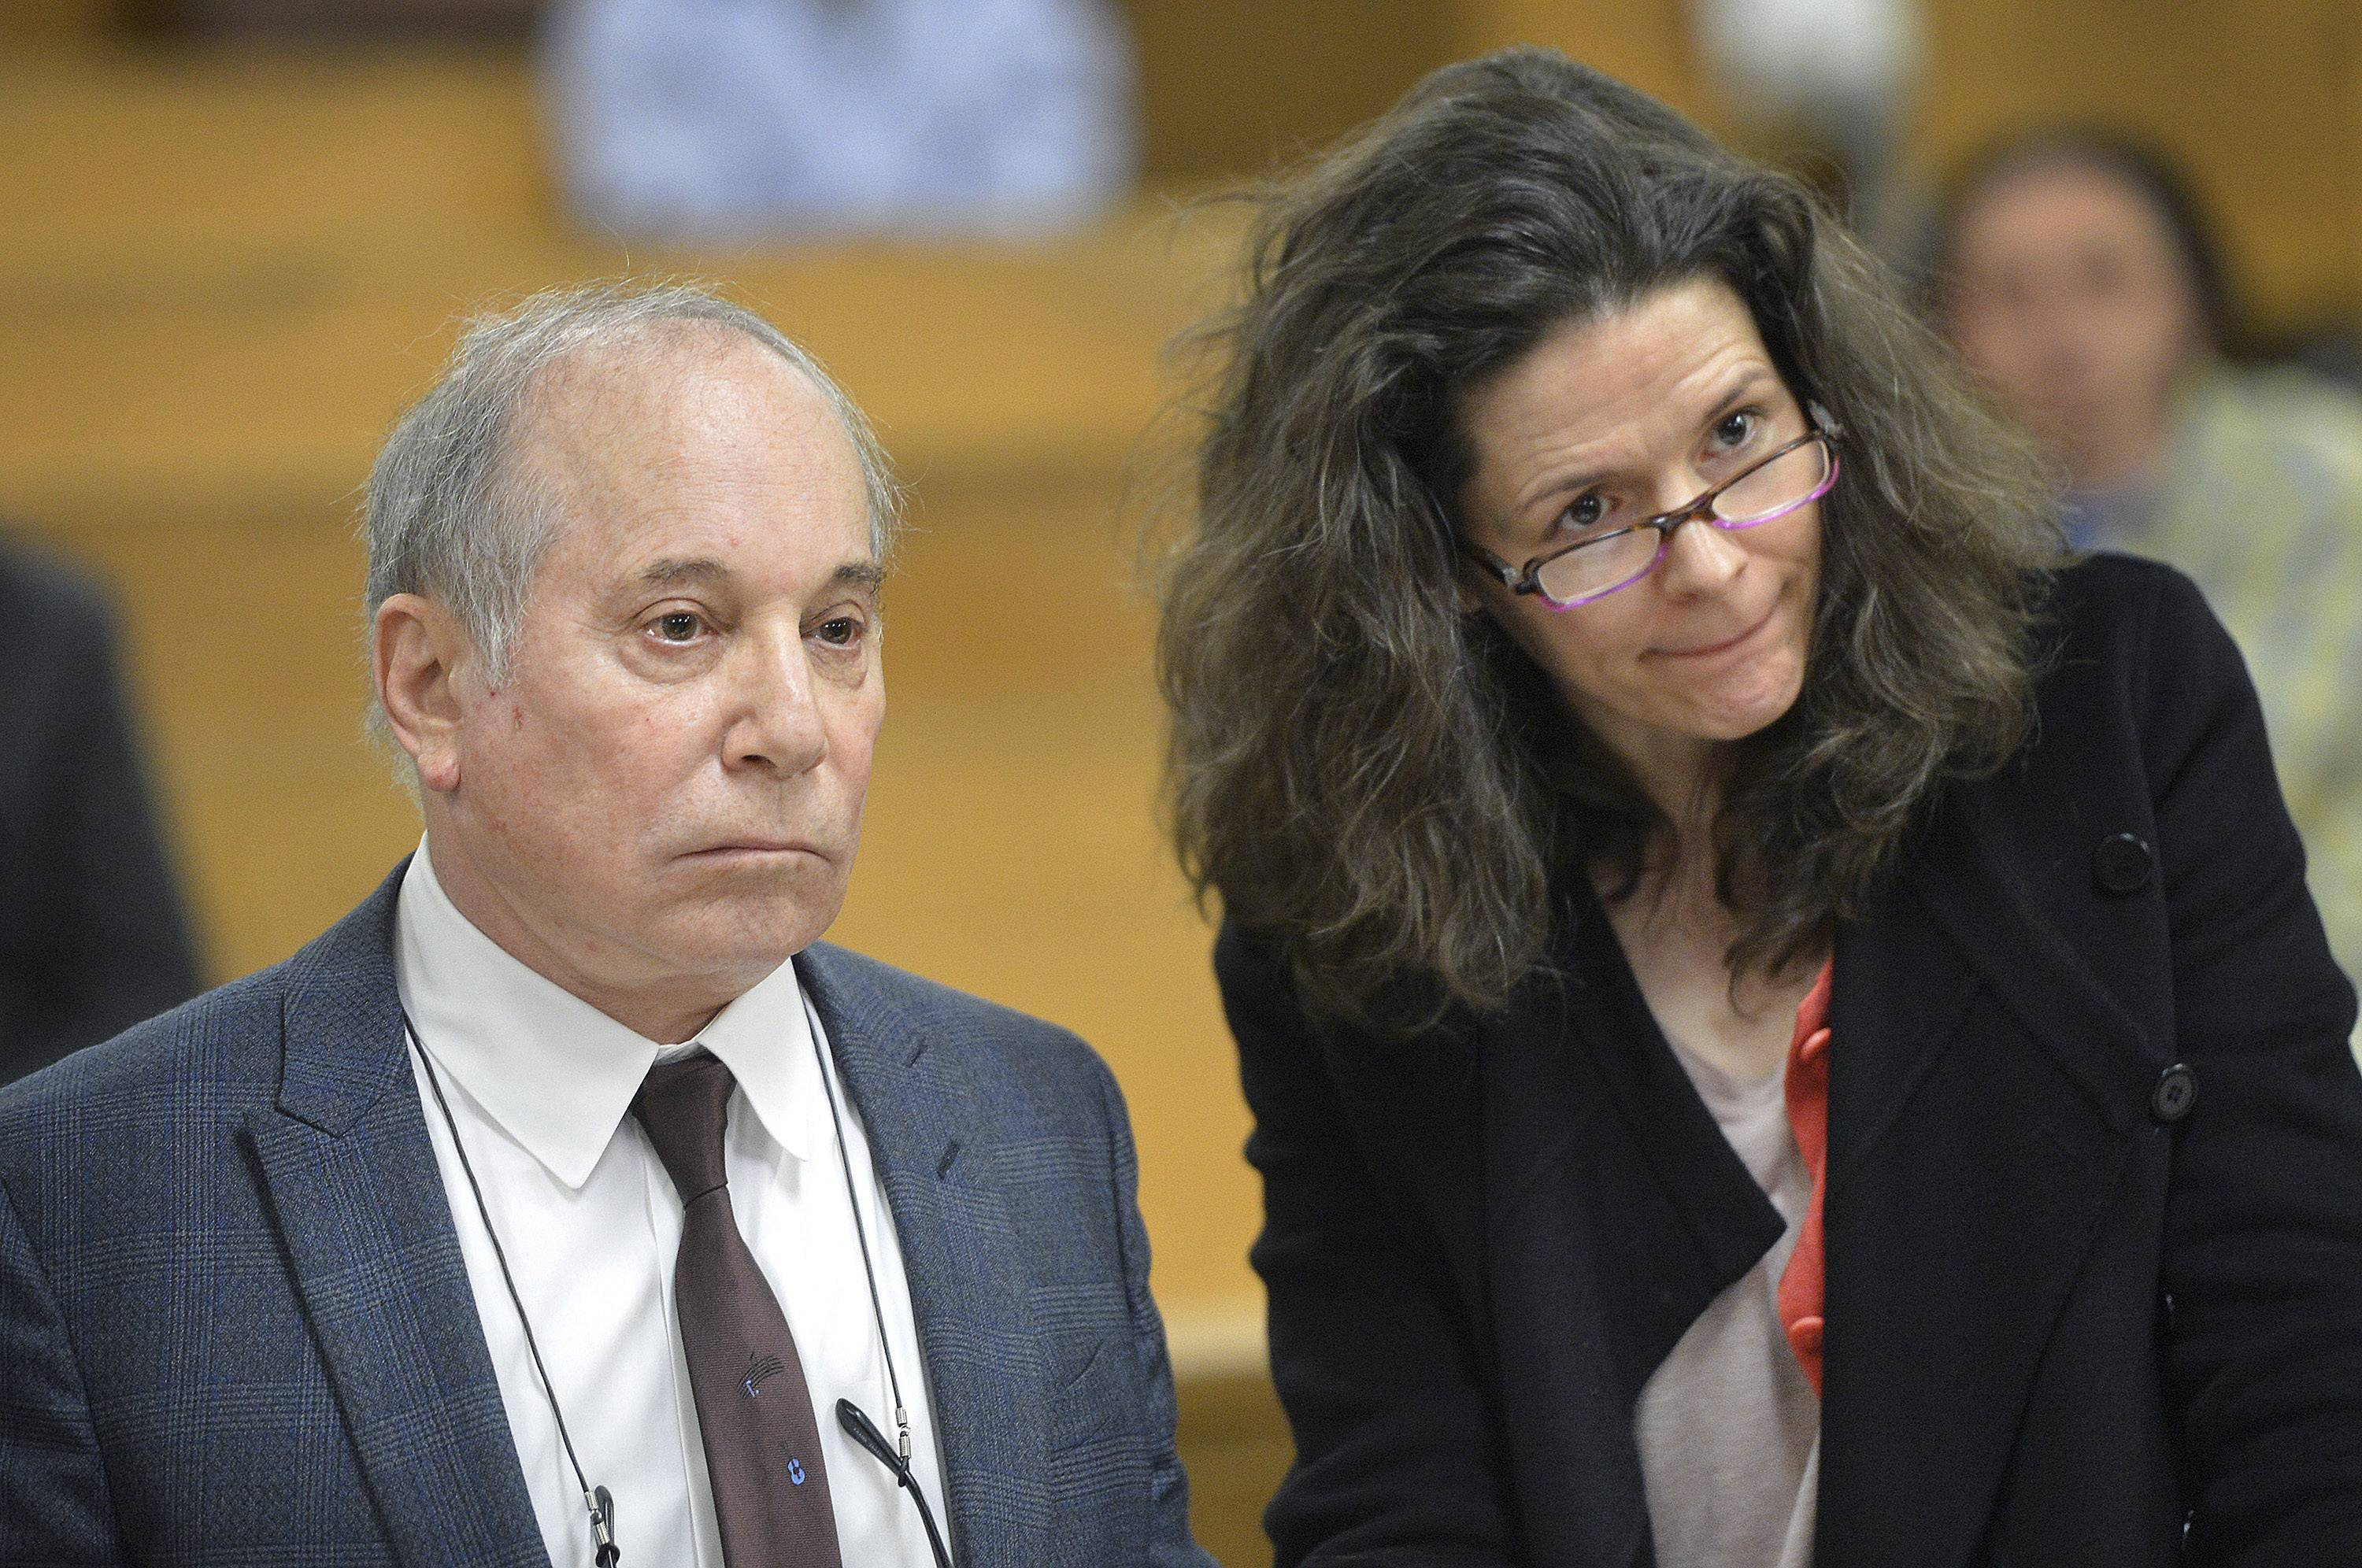 Singer Paul Simon, left, and his wife, Edie Brickell, appear at a hearing in Norwalk Superior Court on April 28 in Norwalk, Conn. The couple were arrested Saturday on disorderly conduct charges by officers investigating a family dispute at their home in New Canaan, Conn.